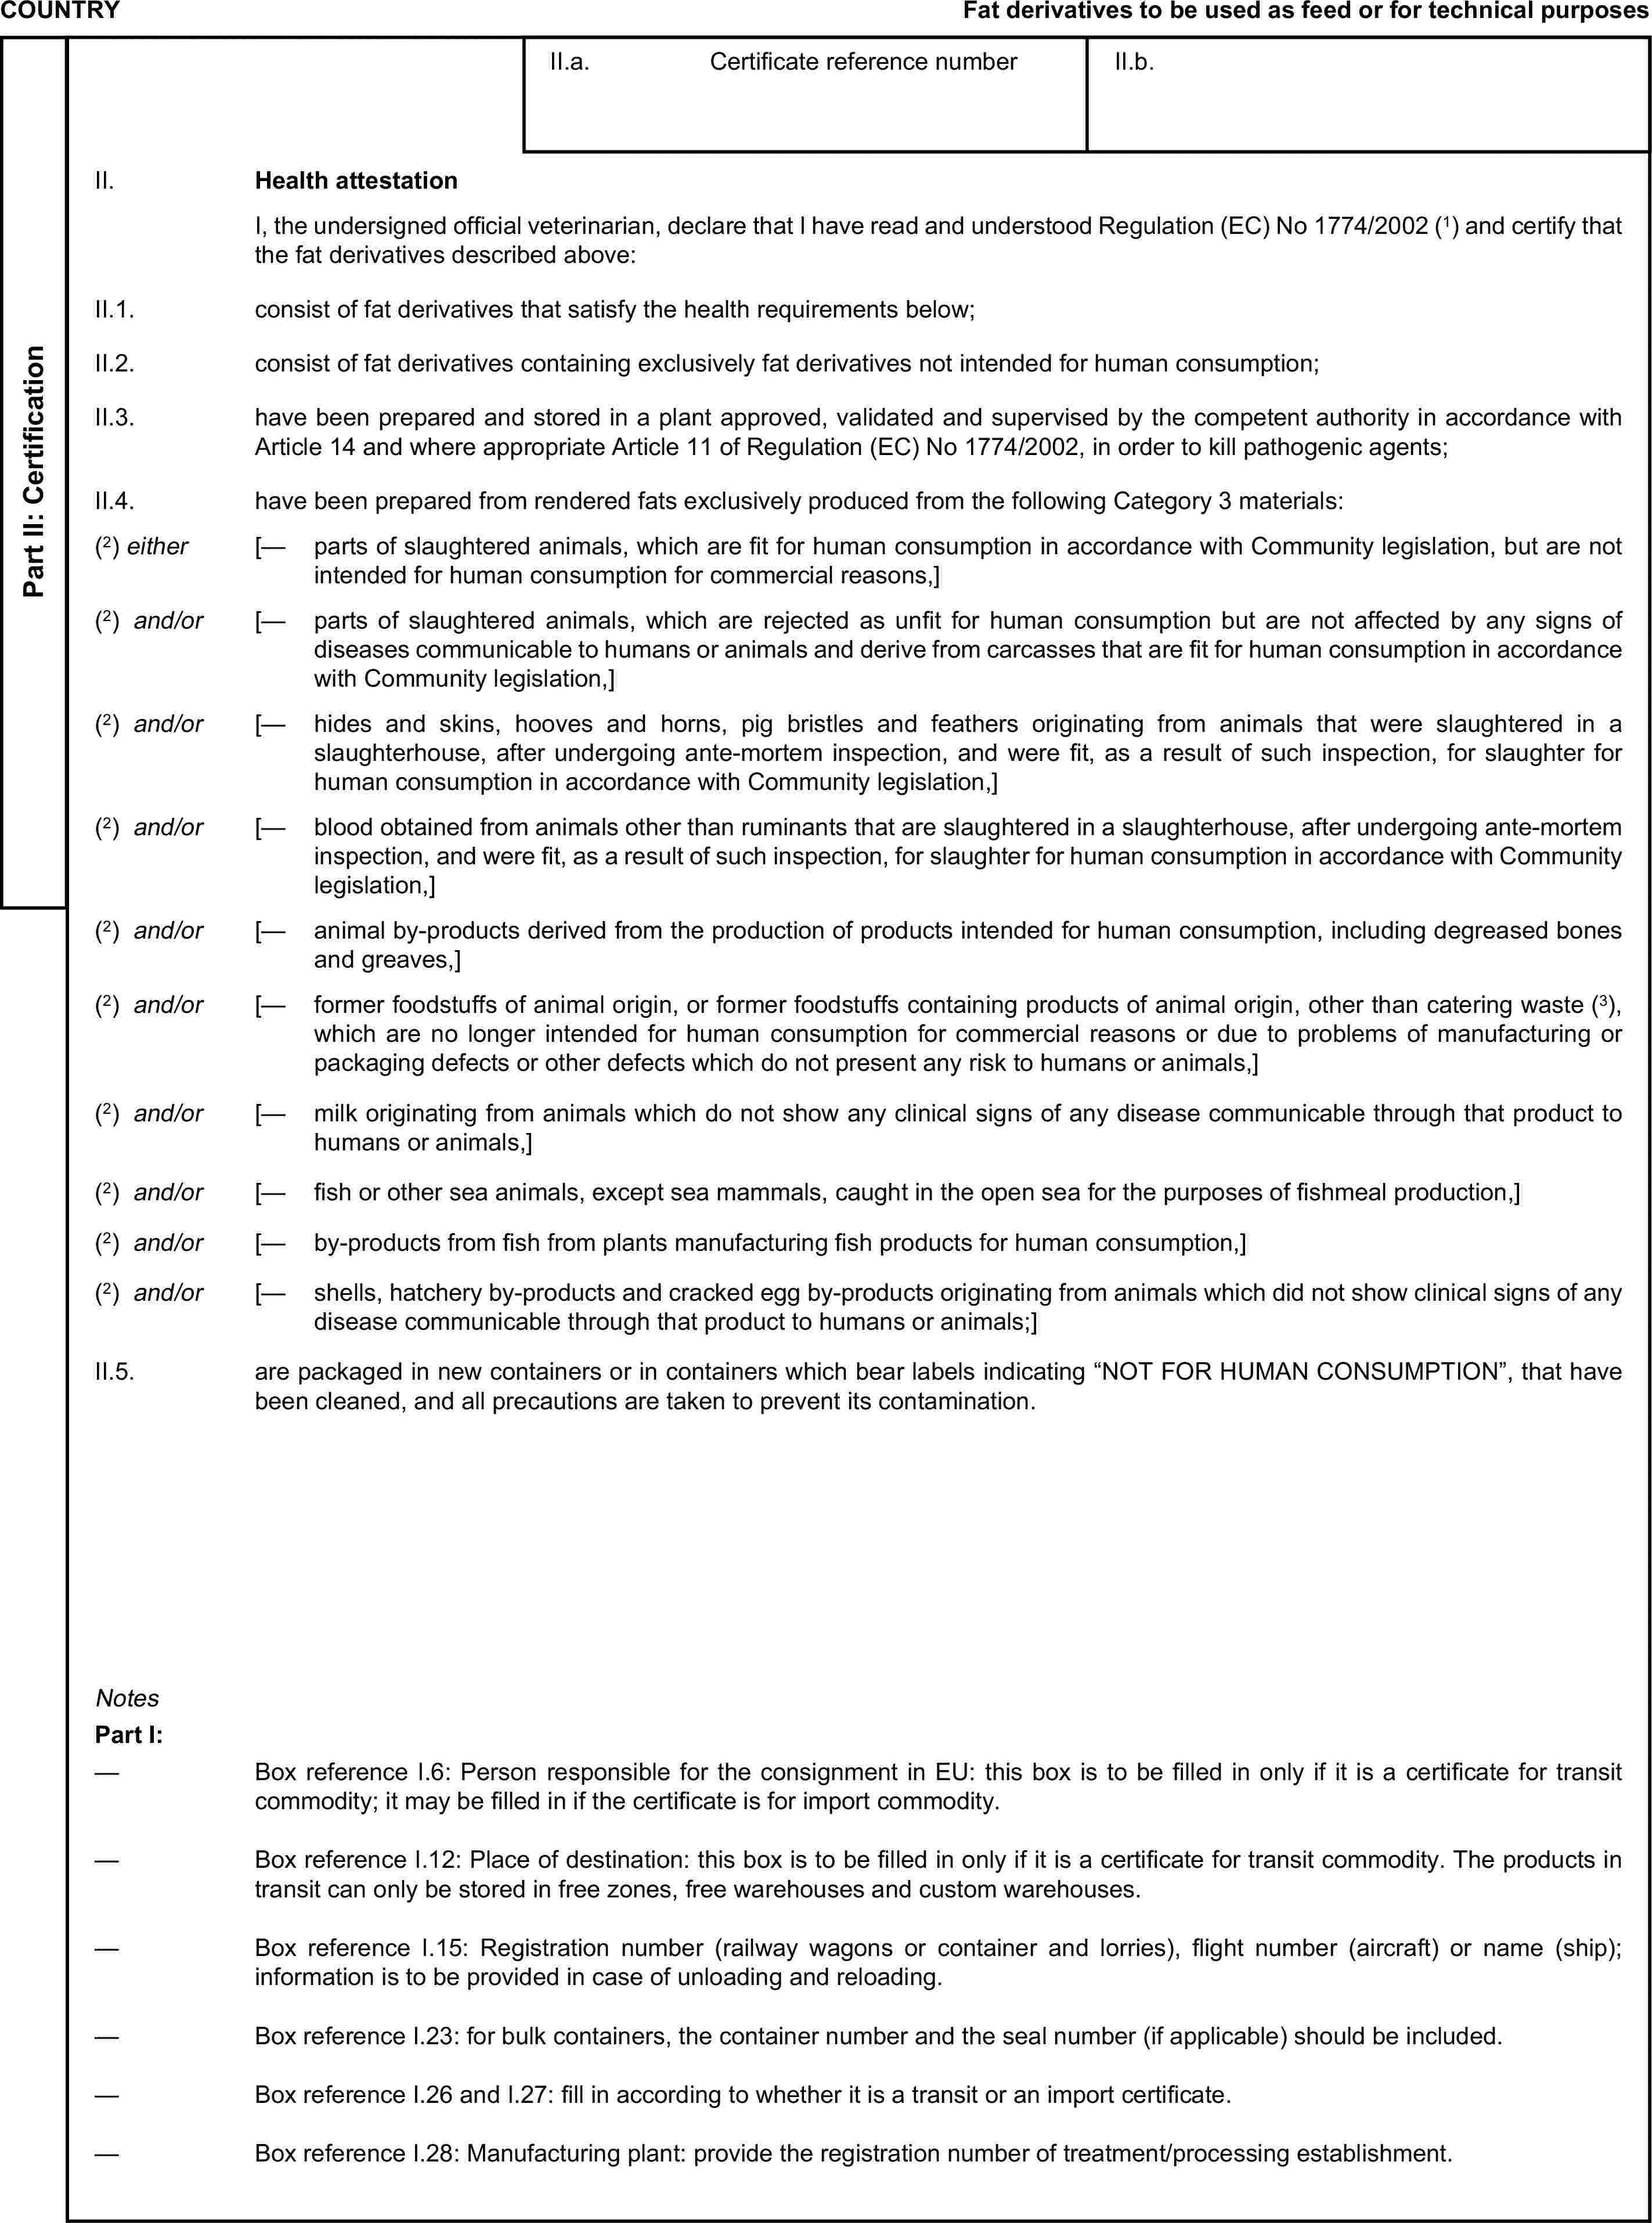 COUNTRYFat derivatives to be used as feed or for technical purposesPart II: CertificationII.a. Certificate reference numberII.b.II. Health attestationI, the undersigned official veterinarian, declare that I have read and understood Regulation (EC) No1774/2002 (1) and certify that the fat derivatives described above:II.1. consist of fat derivatives that satisfy the health requirements below;II.2. consist of fat derivatives containing exclusively fat derivatives not intended for human consumption;II.3. have been prepared and stored in a plant approved, validated and supervised by the competent authority in accordance with Article 14 and where appropriate Article 11 of Regulation (EC) No 1774/2002, in order to kill pathogenic agents;II.4. have been prepared from rendered fats exclusively produced from the following Category 3 materials:(2) either [— parts of slaughtered animals, which are fit for human consumption in accordance with Community legislation, but are not intended for human consumption for commercial reasons,](2) and/or [— parts of slaughtered animals, which are rejected as unfit for human consumption but are not affected by any signs of diseases communicable to humans or animals and derive from carcasses that are fit for human consumption in accordance with Community legislation,](2) and/or [— hides and skins, hooves and horns, pig bristles and feathers originating from animals that were slaughtered in a slaughterhouse, after undergoing ante-mortem inspection, and were fit, as a result of such inspection, for slaughter for human consumption in accordance with Community legislation,](2) and/or [— blood obtained from animals other than ruminants that are slaughtered in a slaughterhouse, after undergoing ante-mortem inspection, and were fit, as a result of such inspection, for slaughter for human consumption in accordance with Community legislation,](2) and/or [— animal by-products derived from the production of products intended for human consumption, includ